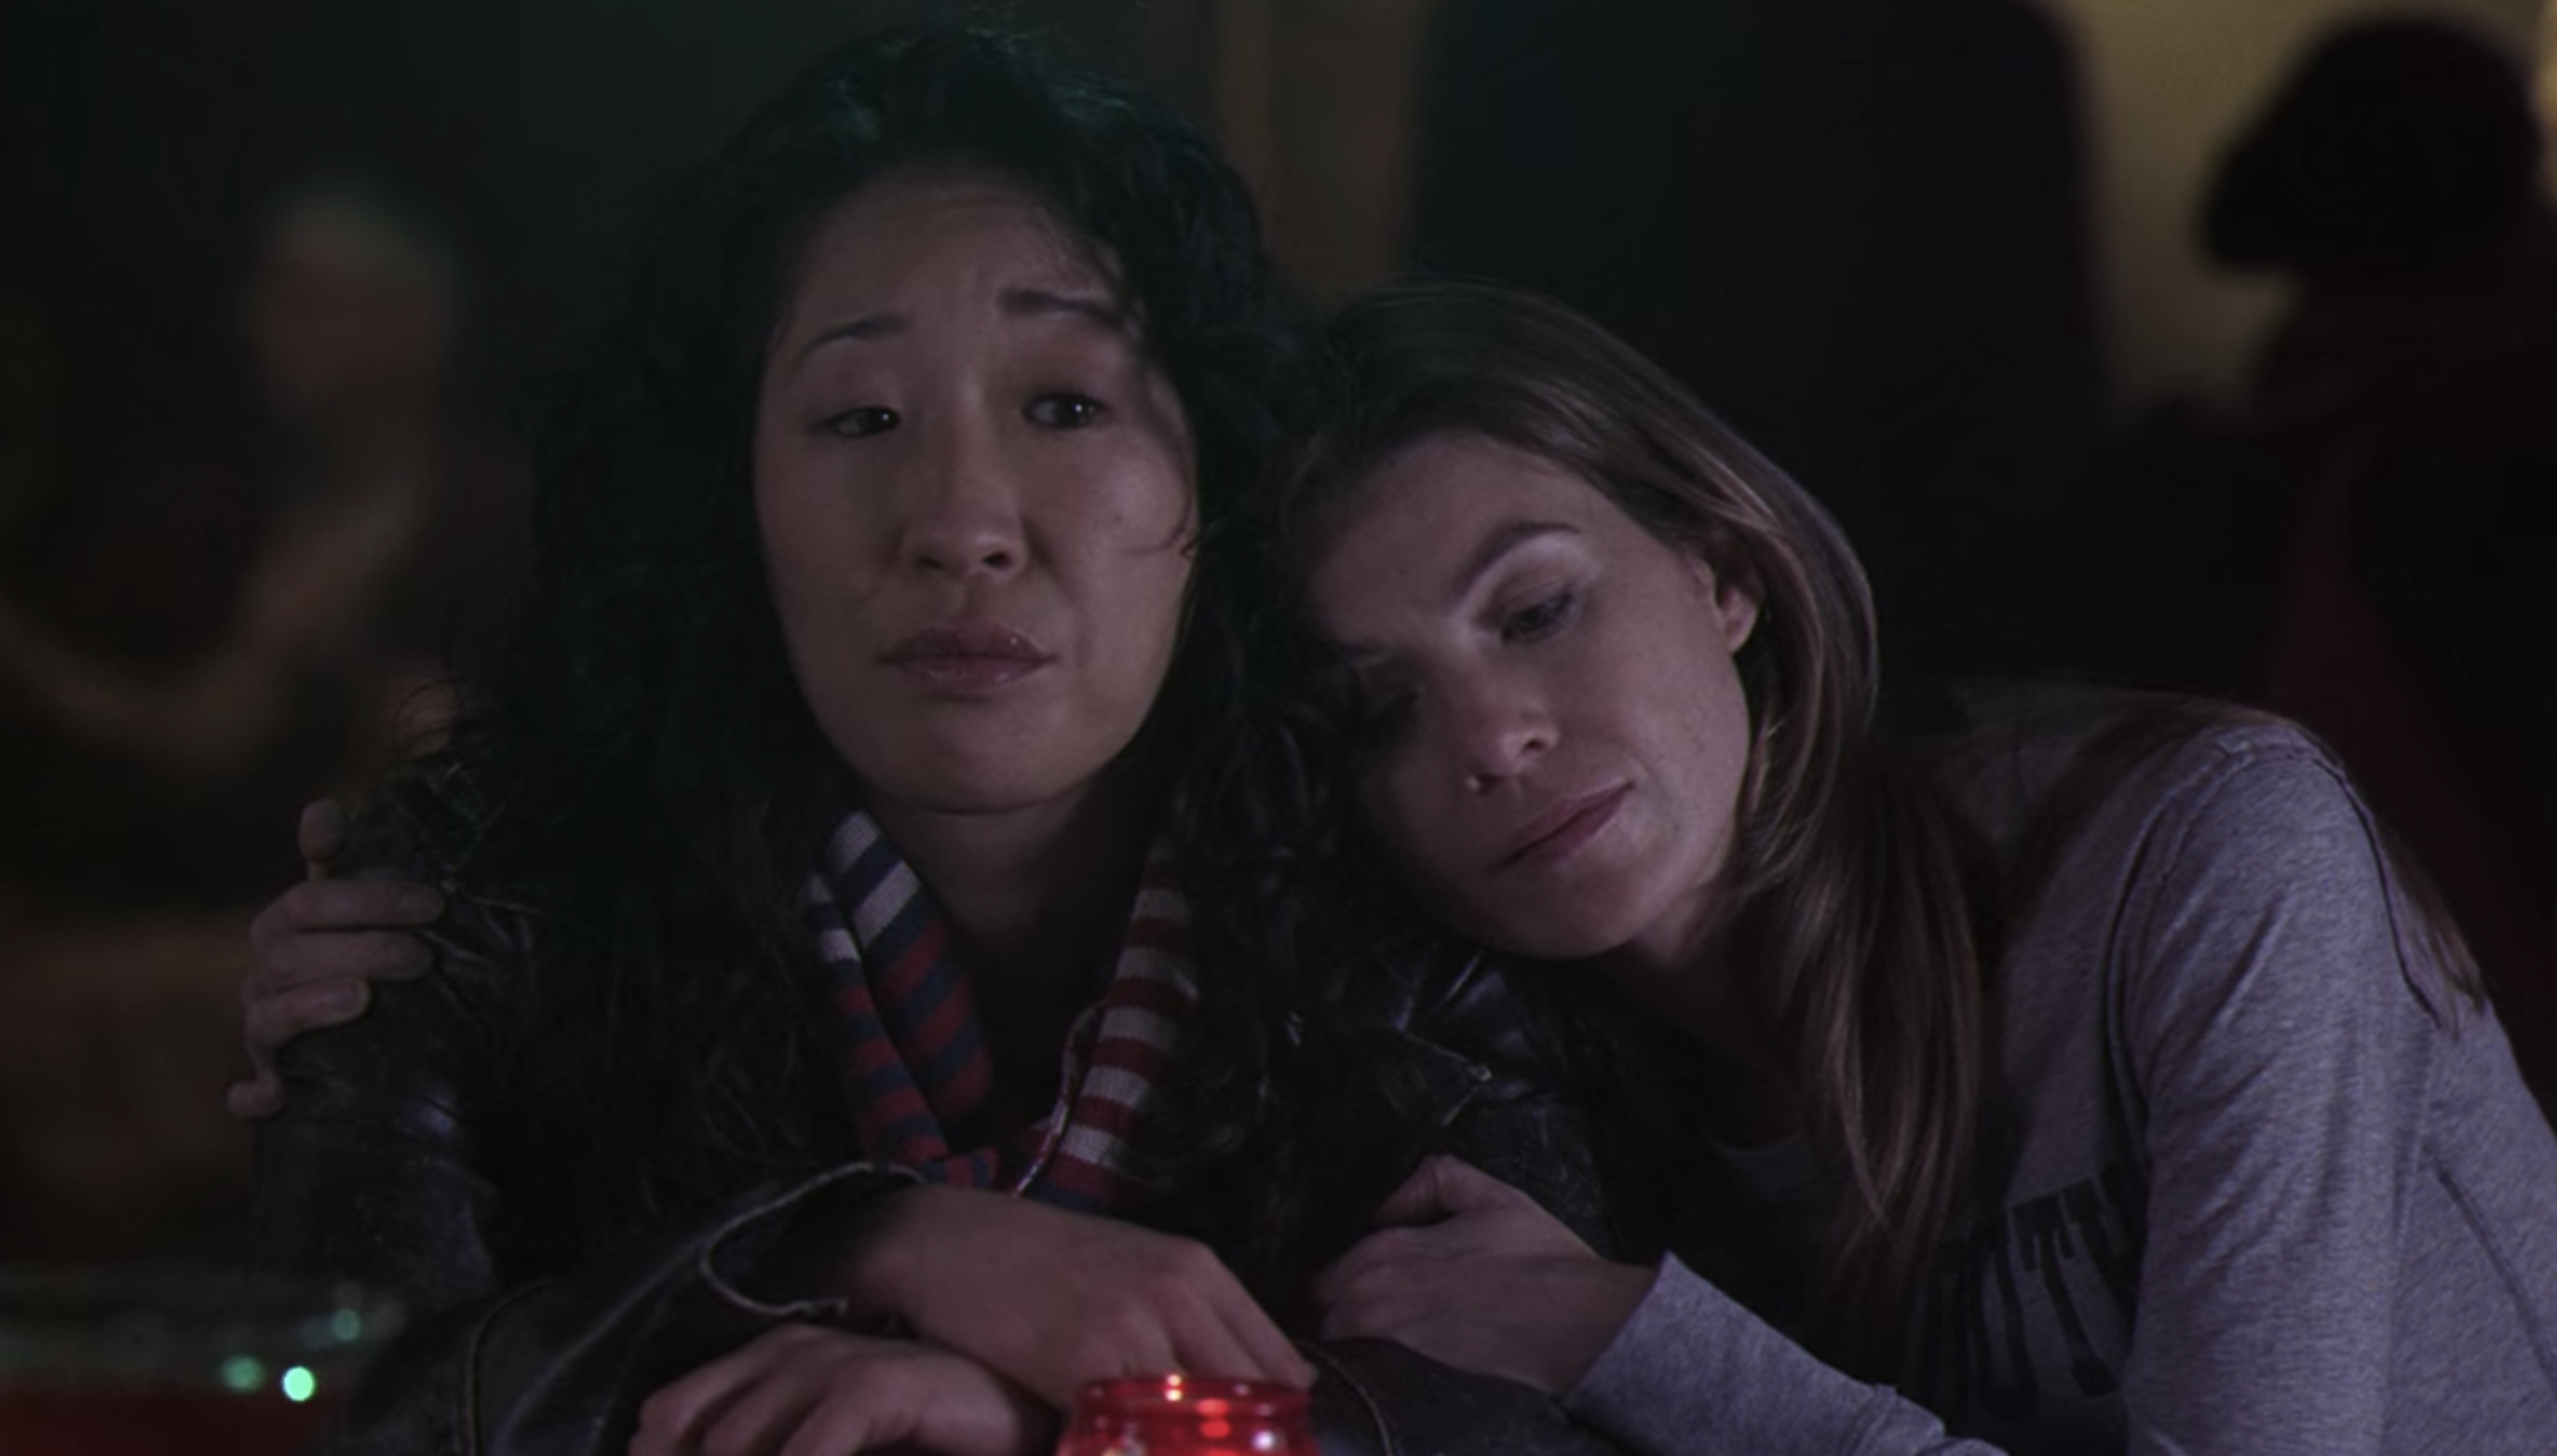 Cristina and Meredith hugging in a bar